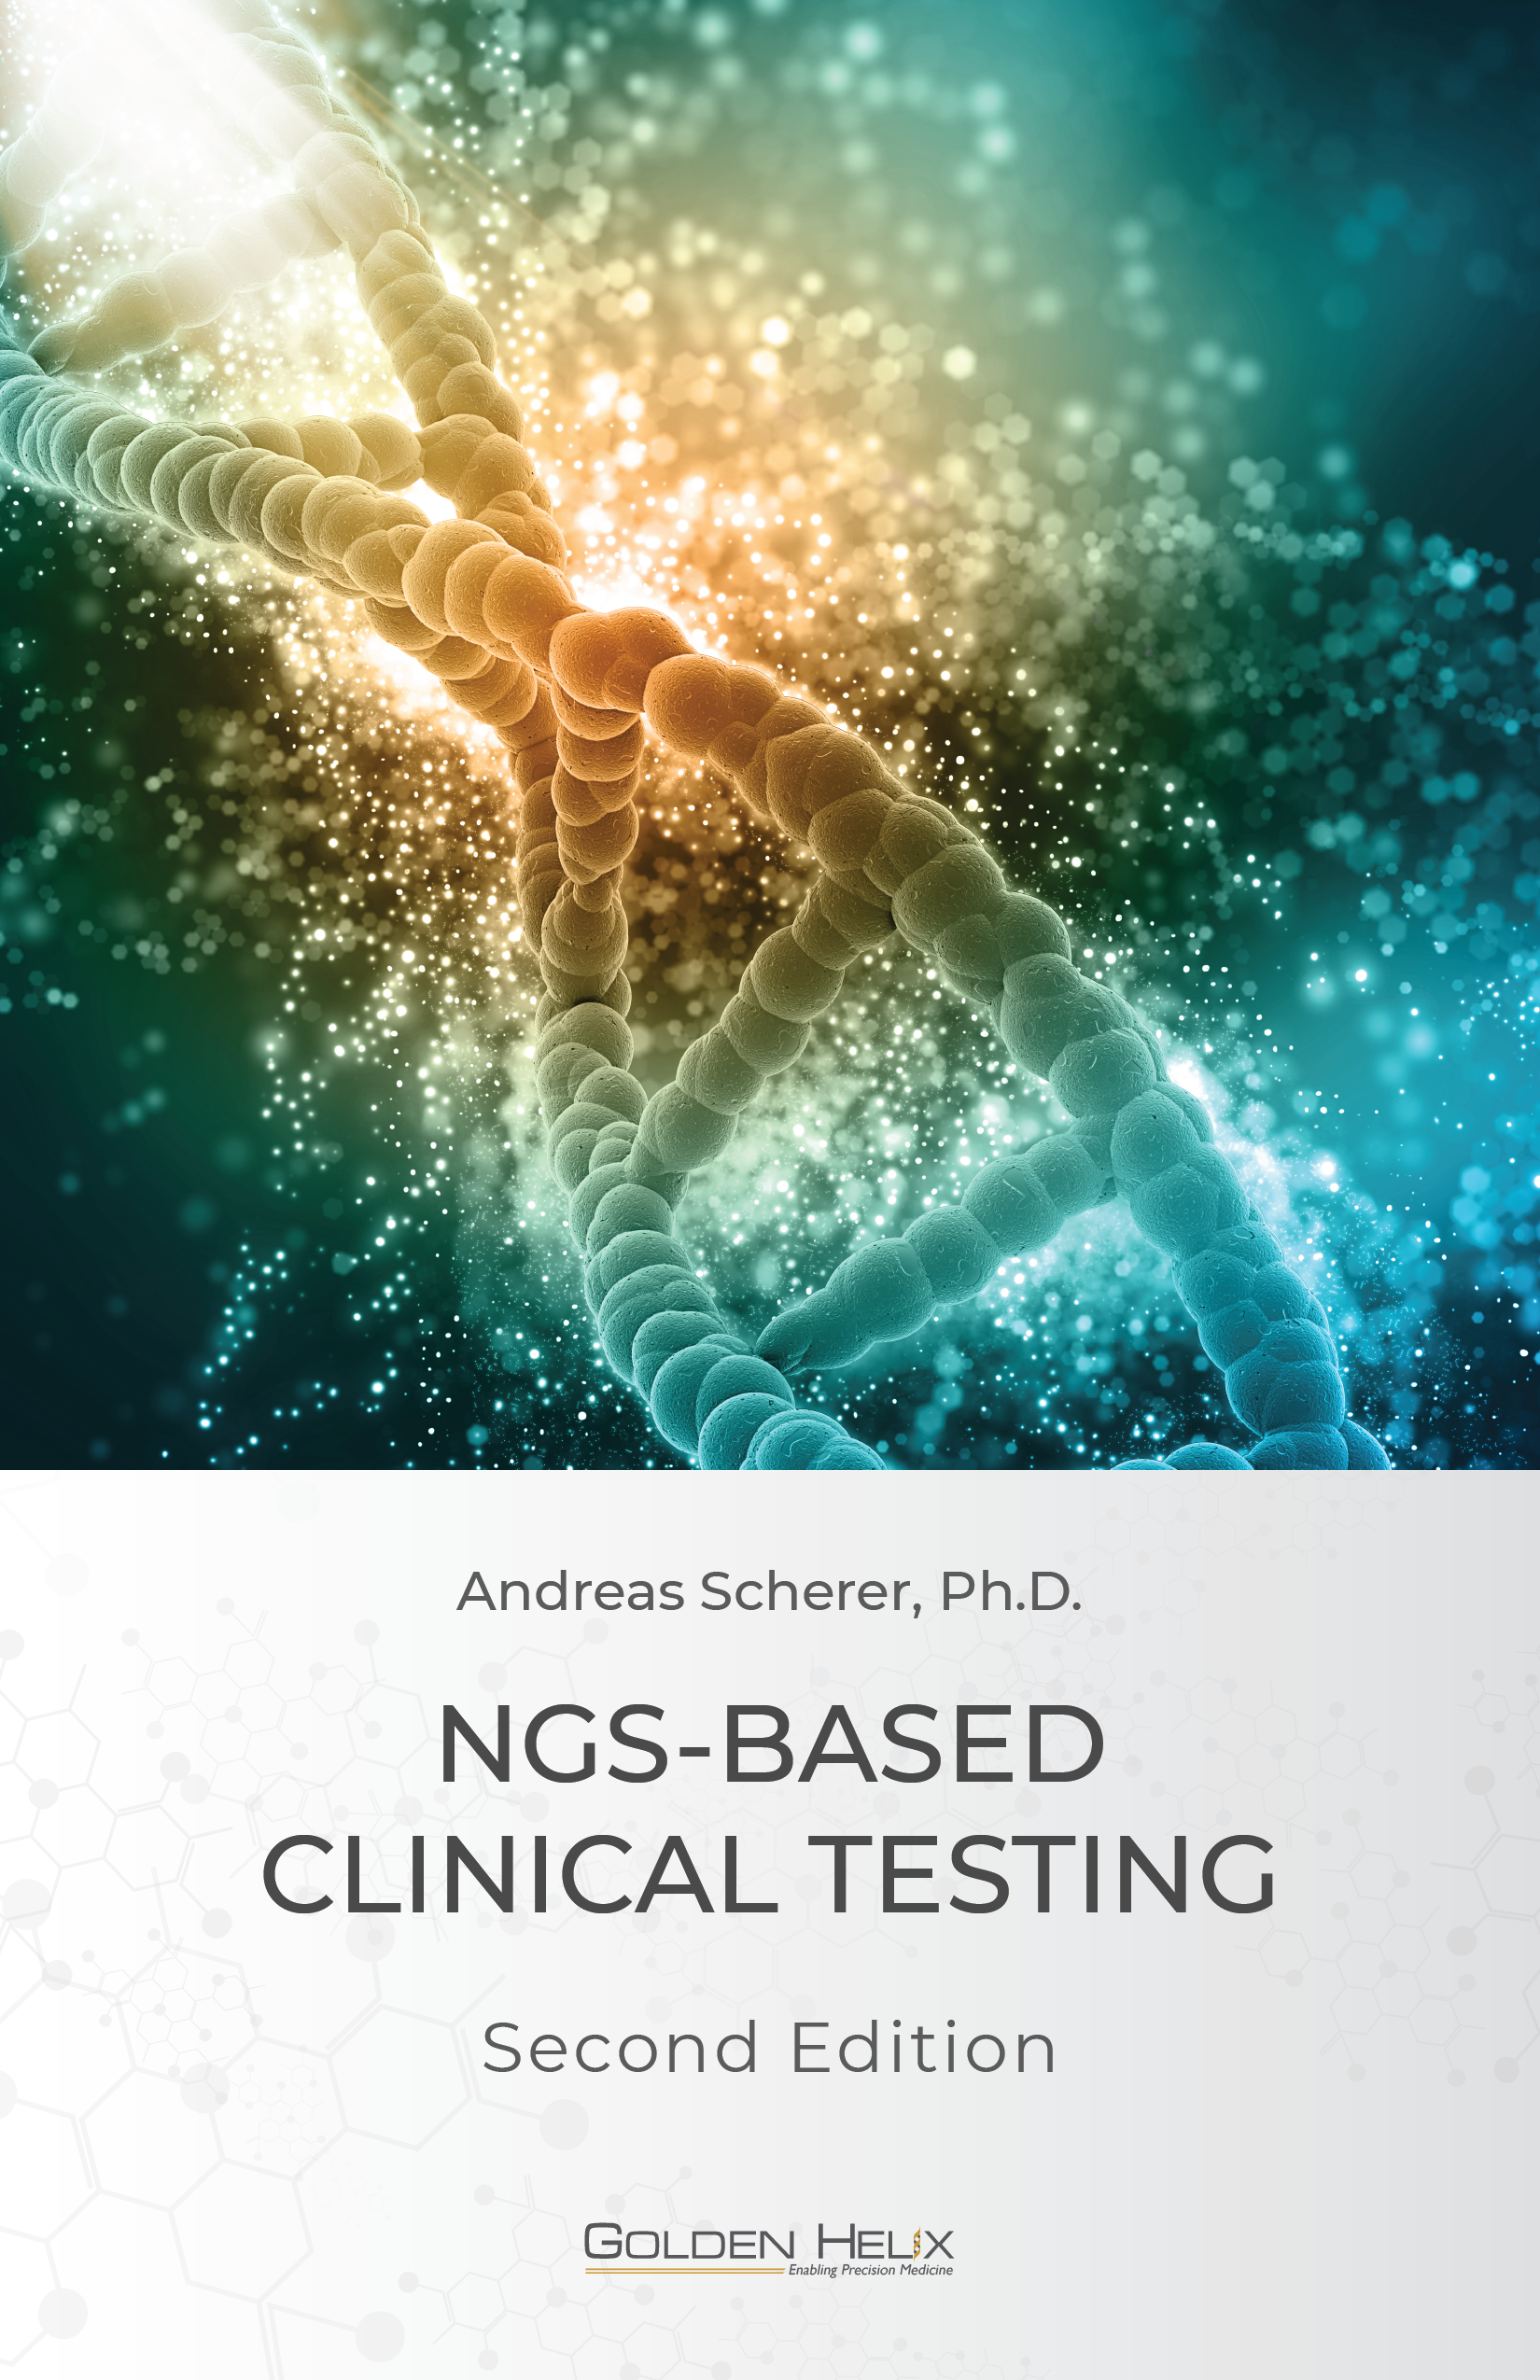 NGS-Based Clinical Testing